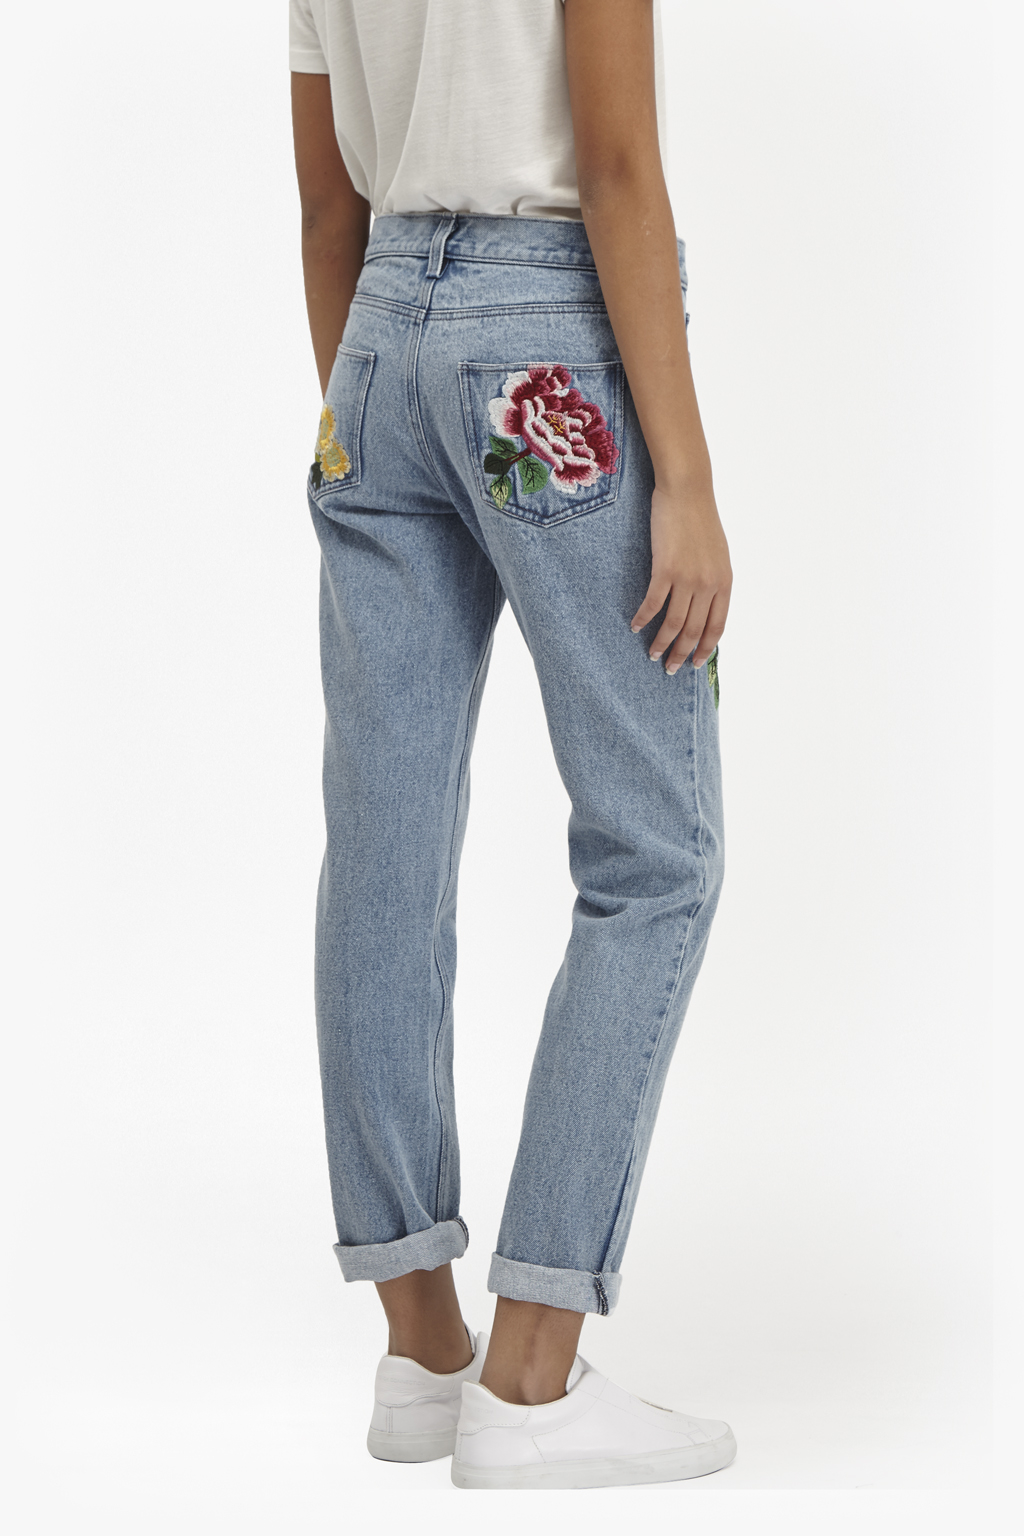 French Connection Dionne Embroidered Boyfit Jeans In Blue